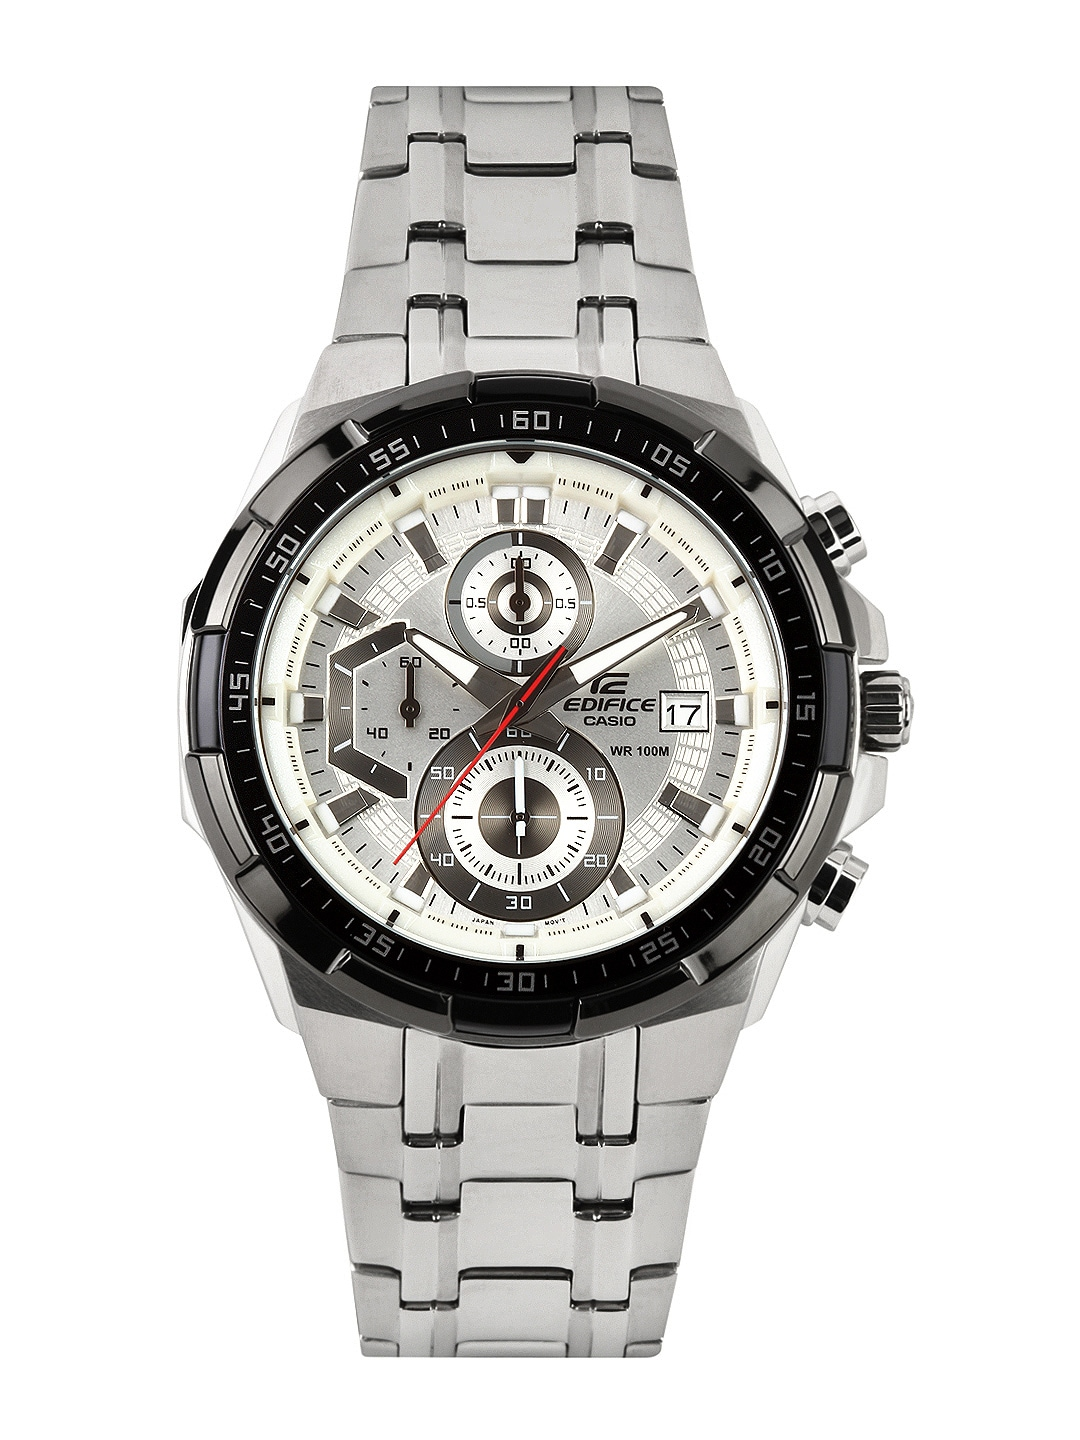 CASIO Edifice Men Silver-Toned Dial Chronograph Watch EX192